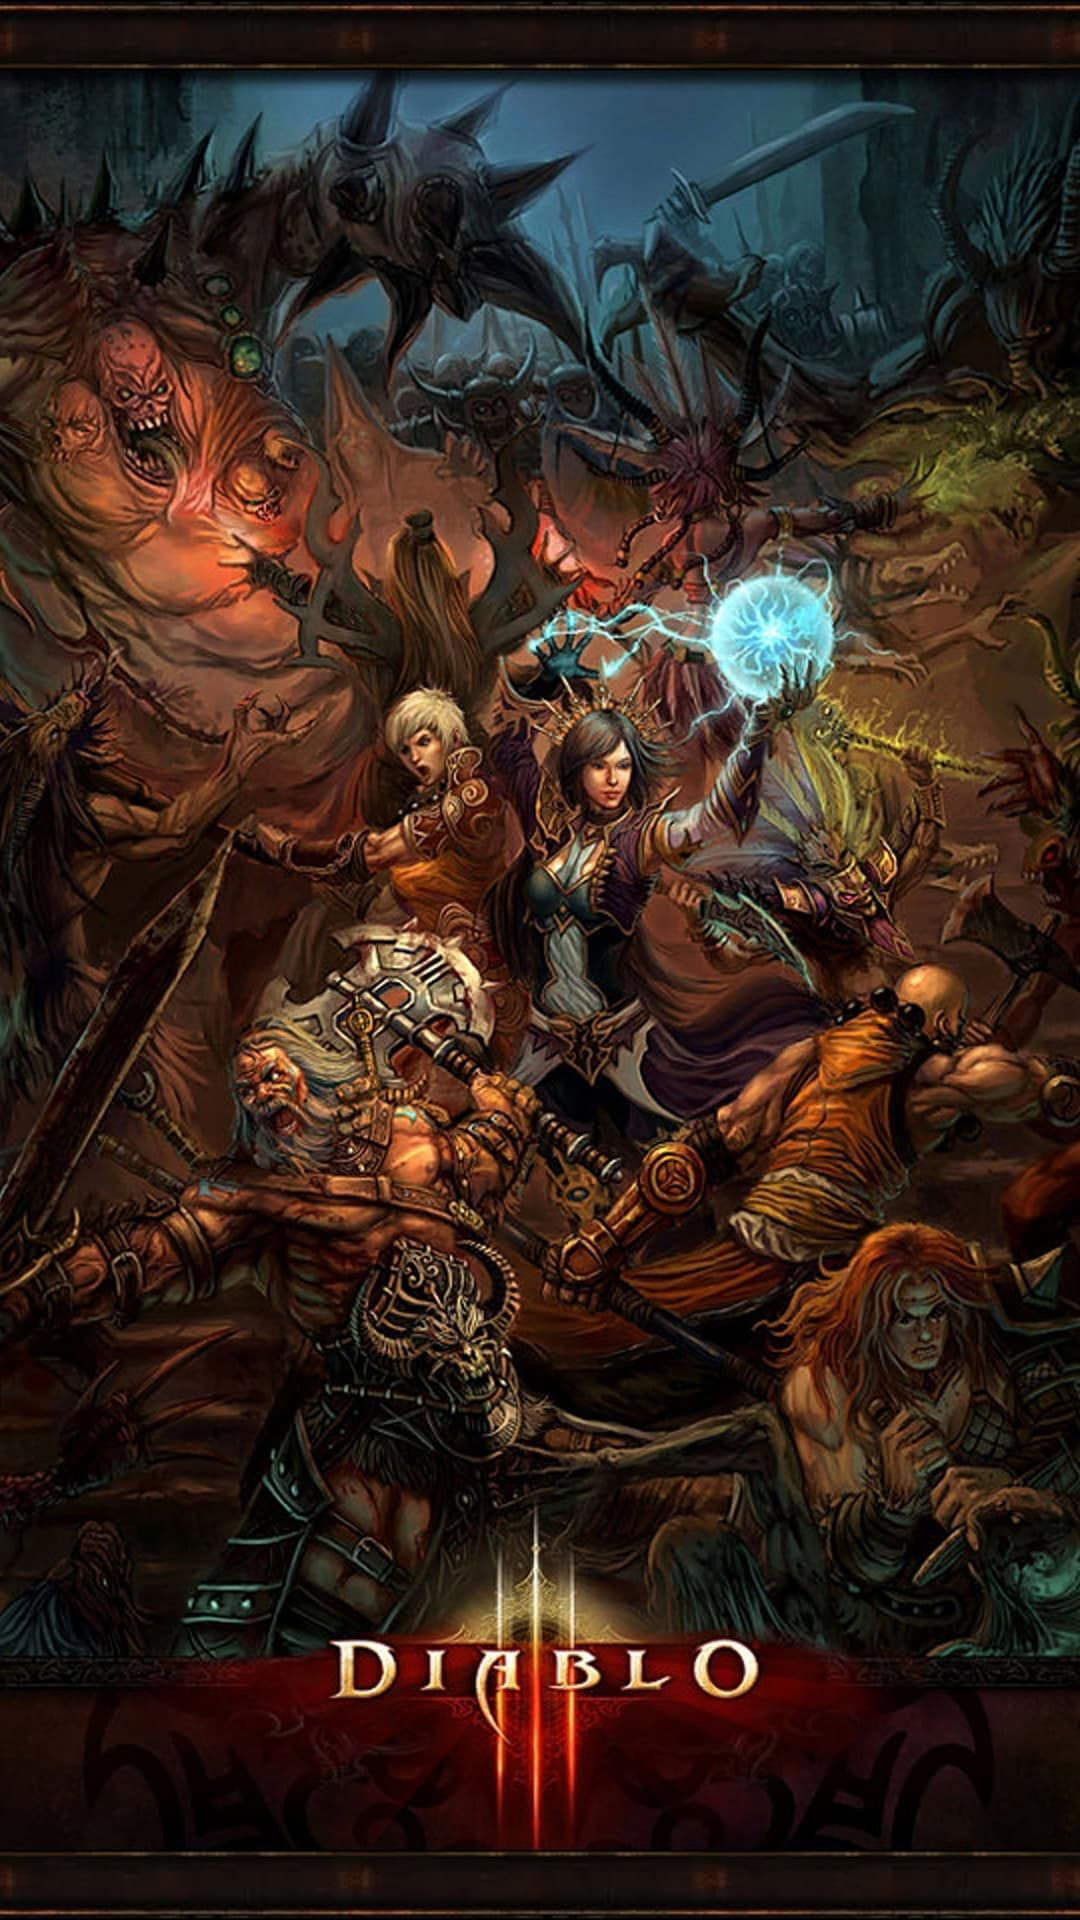 Http Wallpaperformobile Org 16508 Diablo 3 Wallpaper Android Html Diablo 3 Wallpaper Android Diablo Game Diablo Art